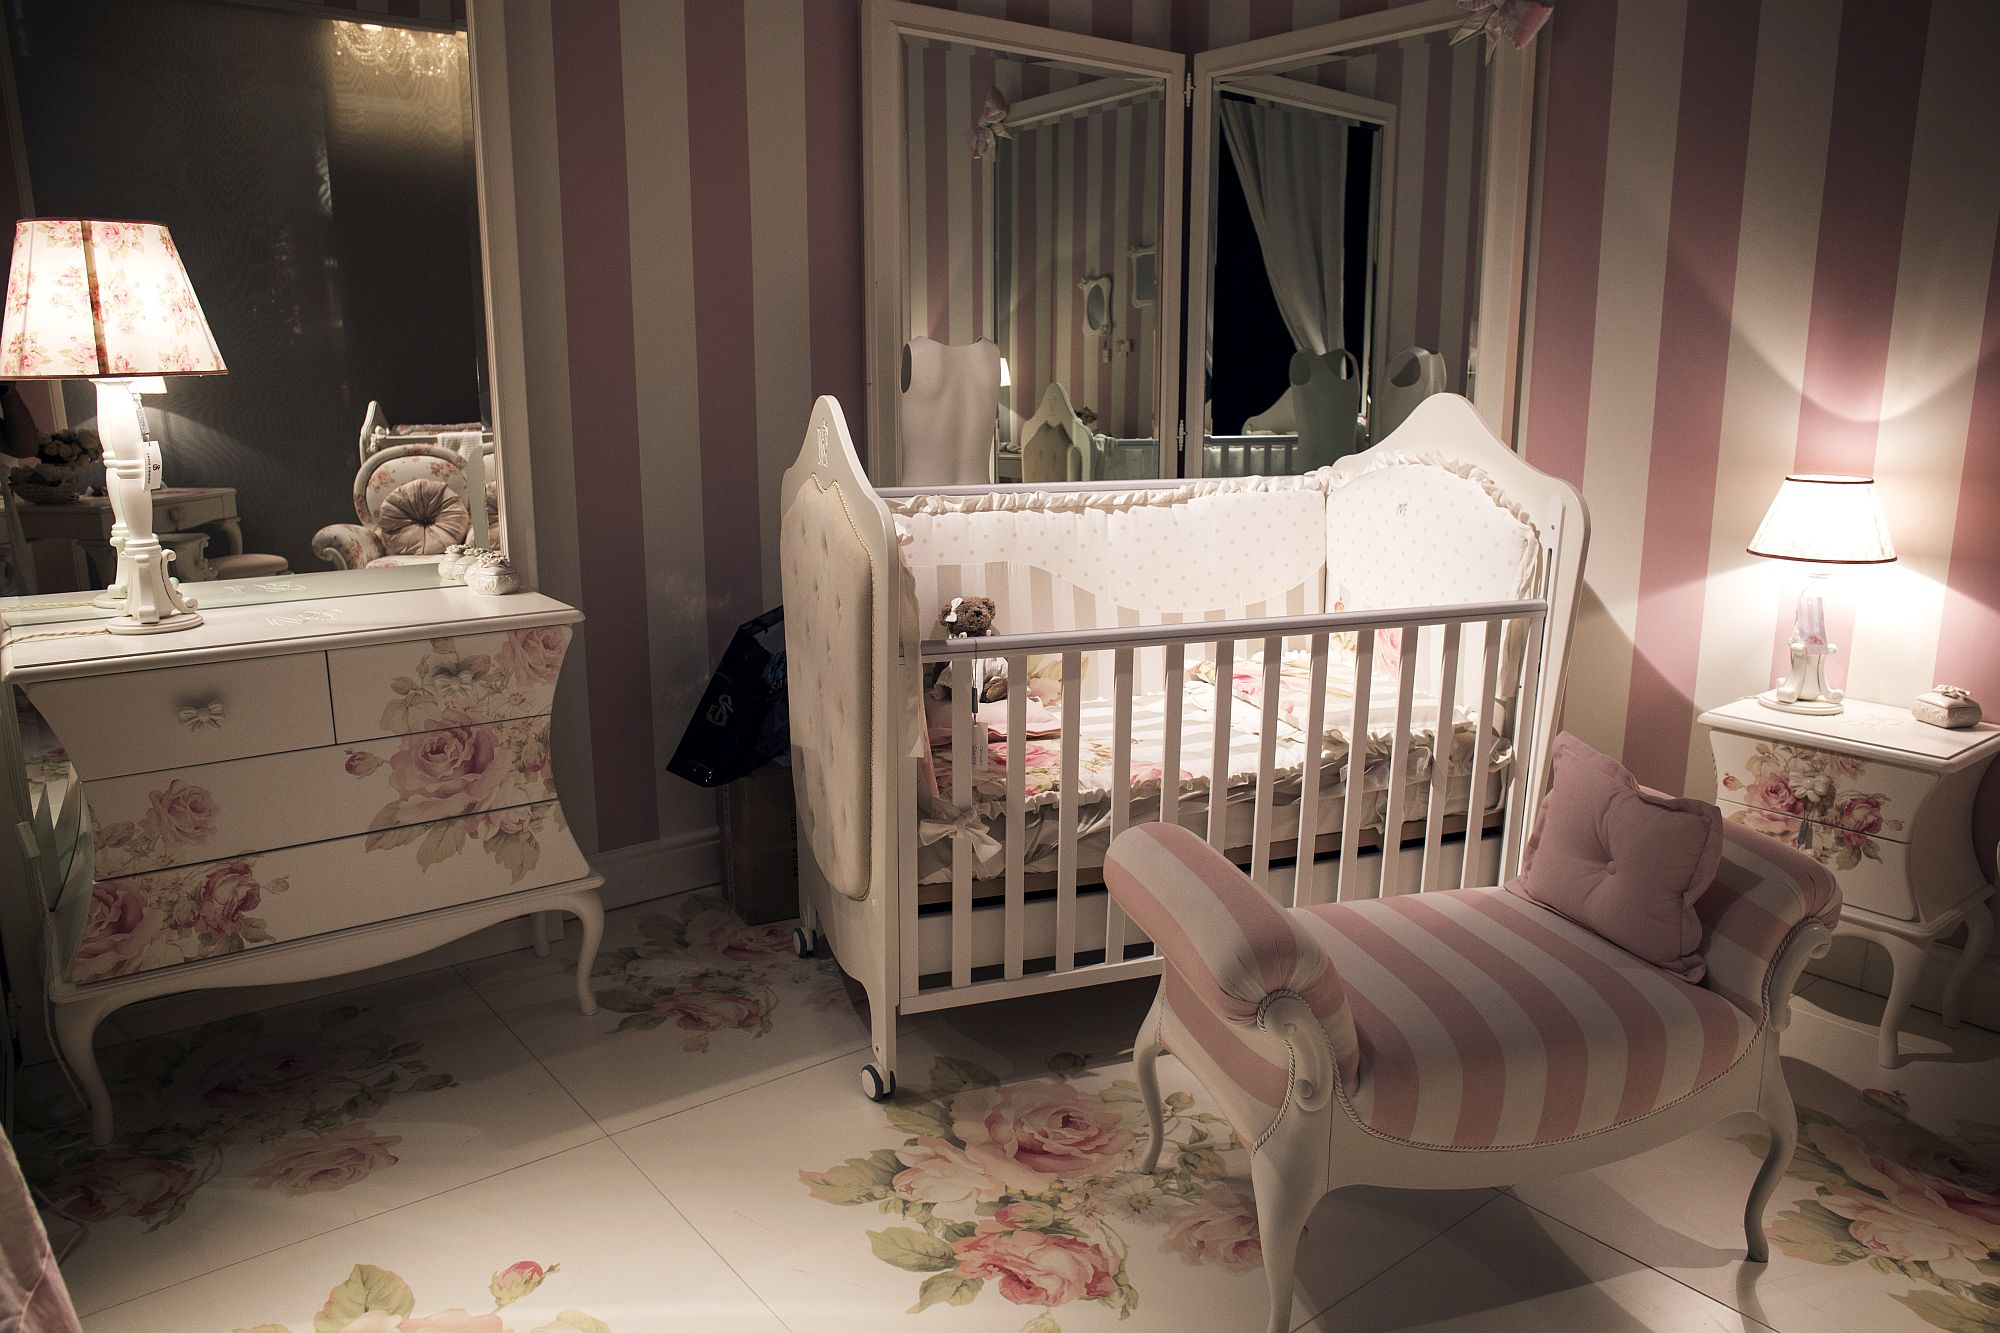 Pink-and-white-stripes-bring-elegance-to-the-girls-nursery